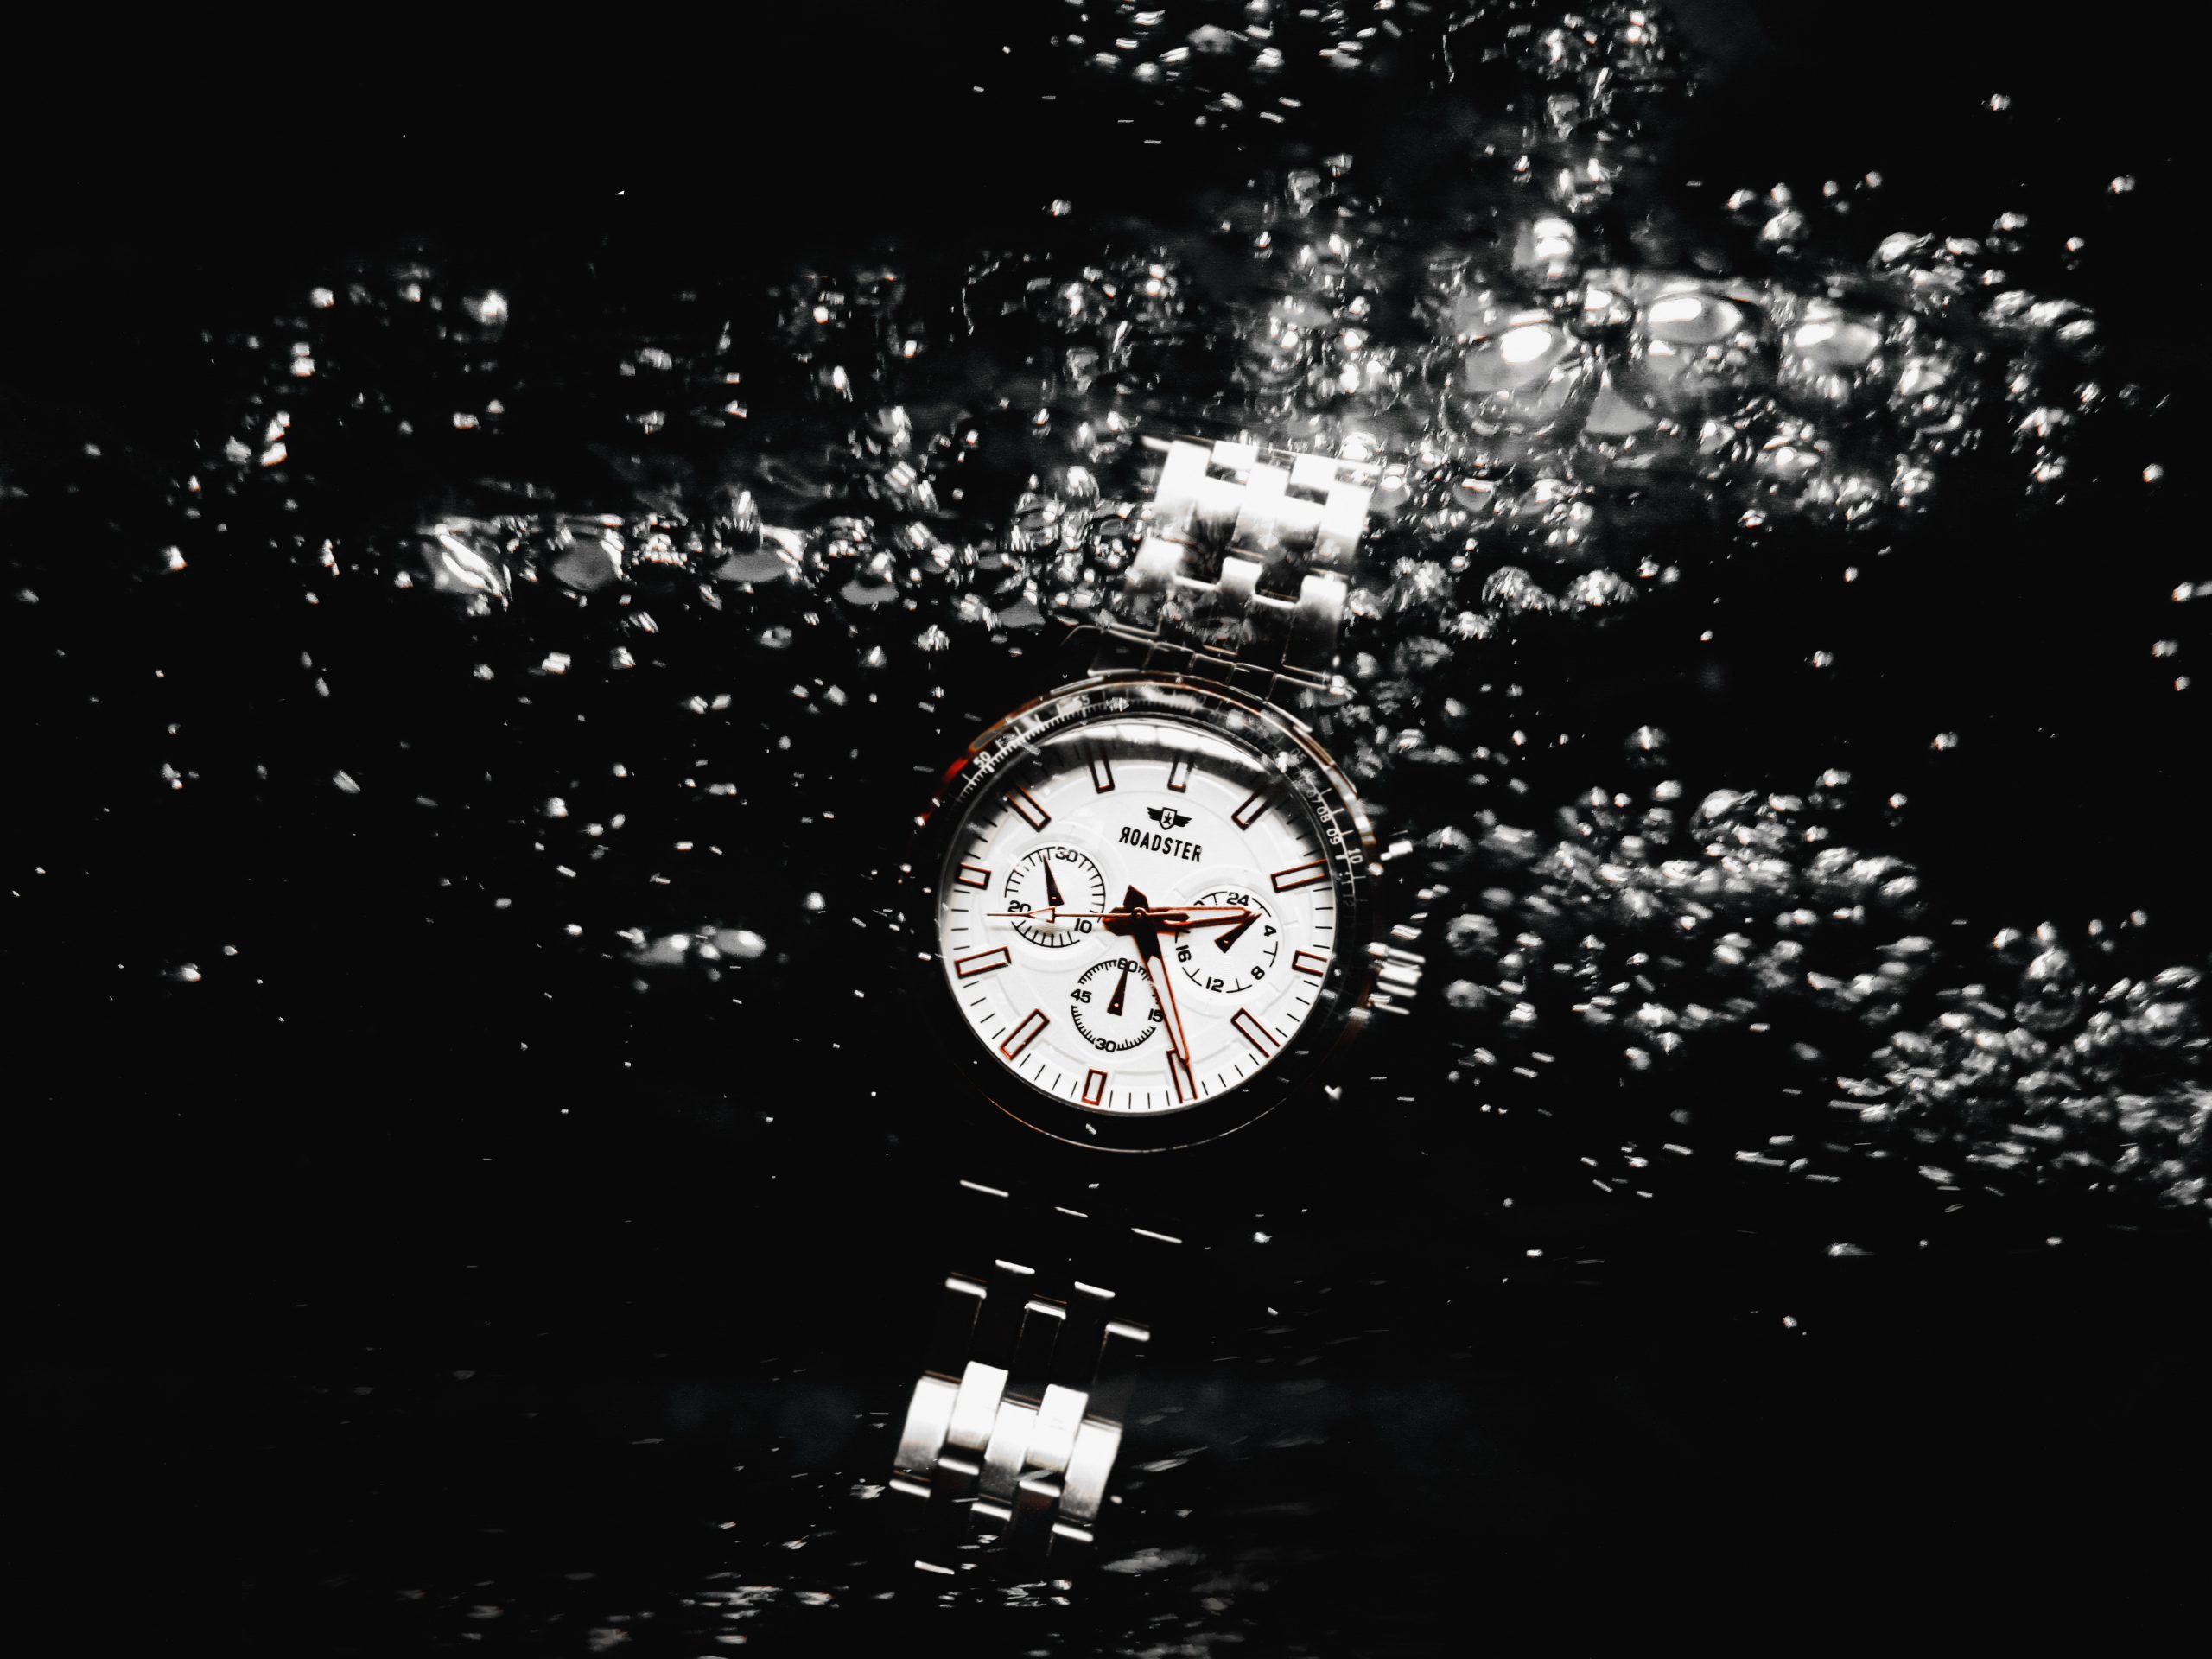 Water splash on a watch